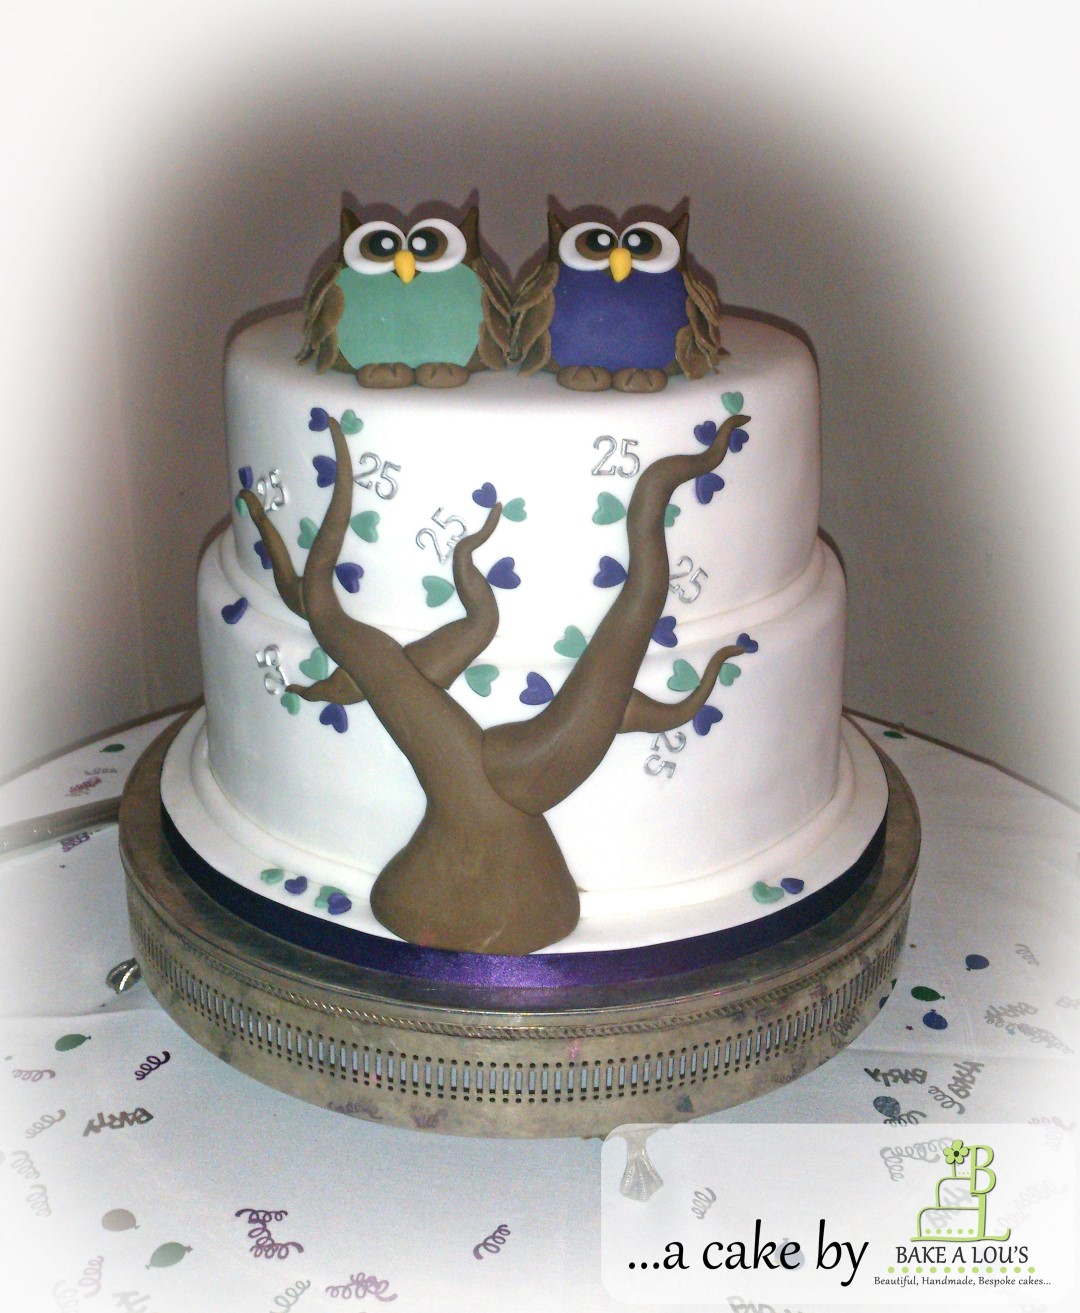 25th Wedding Anniversary Cakes: Owl Themed 25th Wedding Anniversary Cake